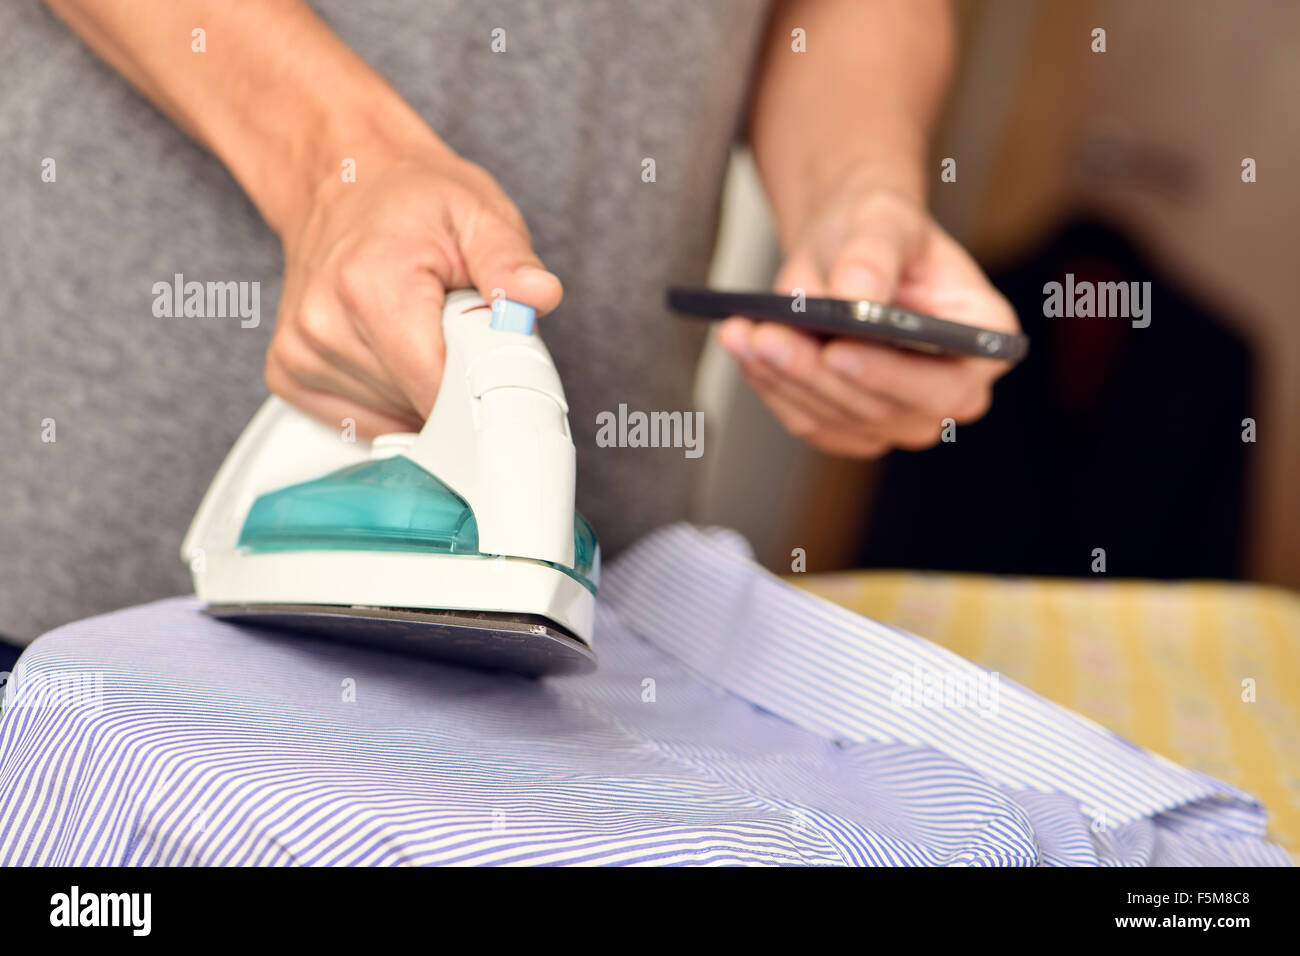 closeup of a young man ironing clothes and using a smartphone at the same time - Stock Image